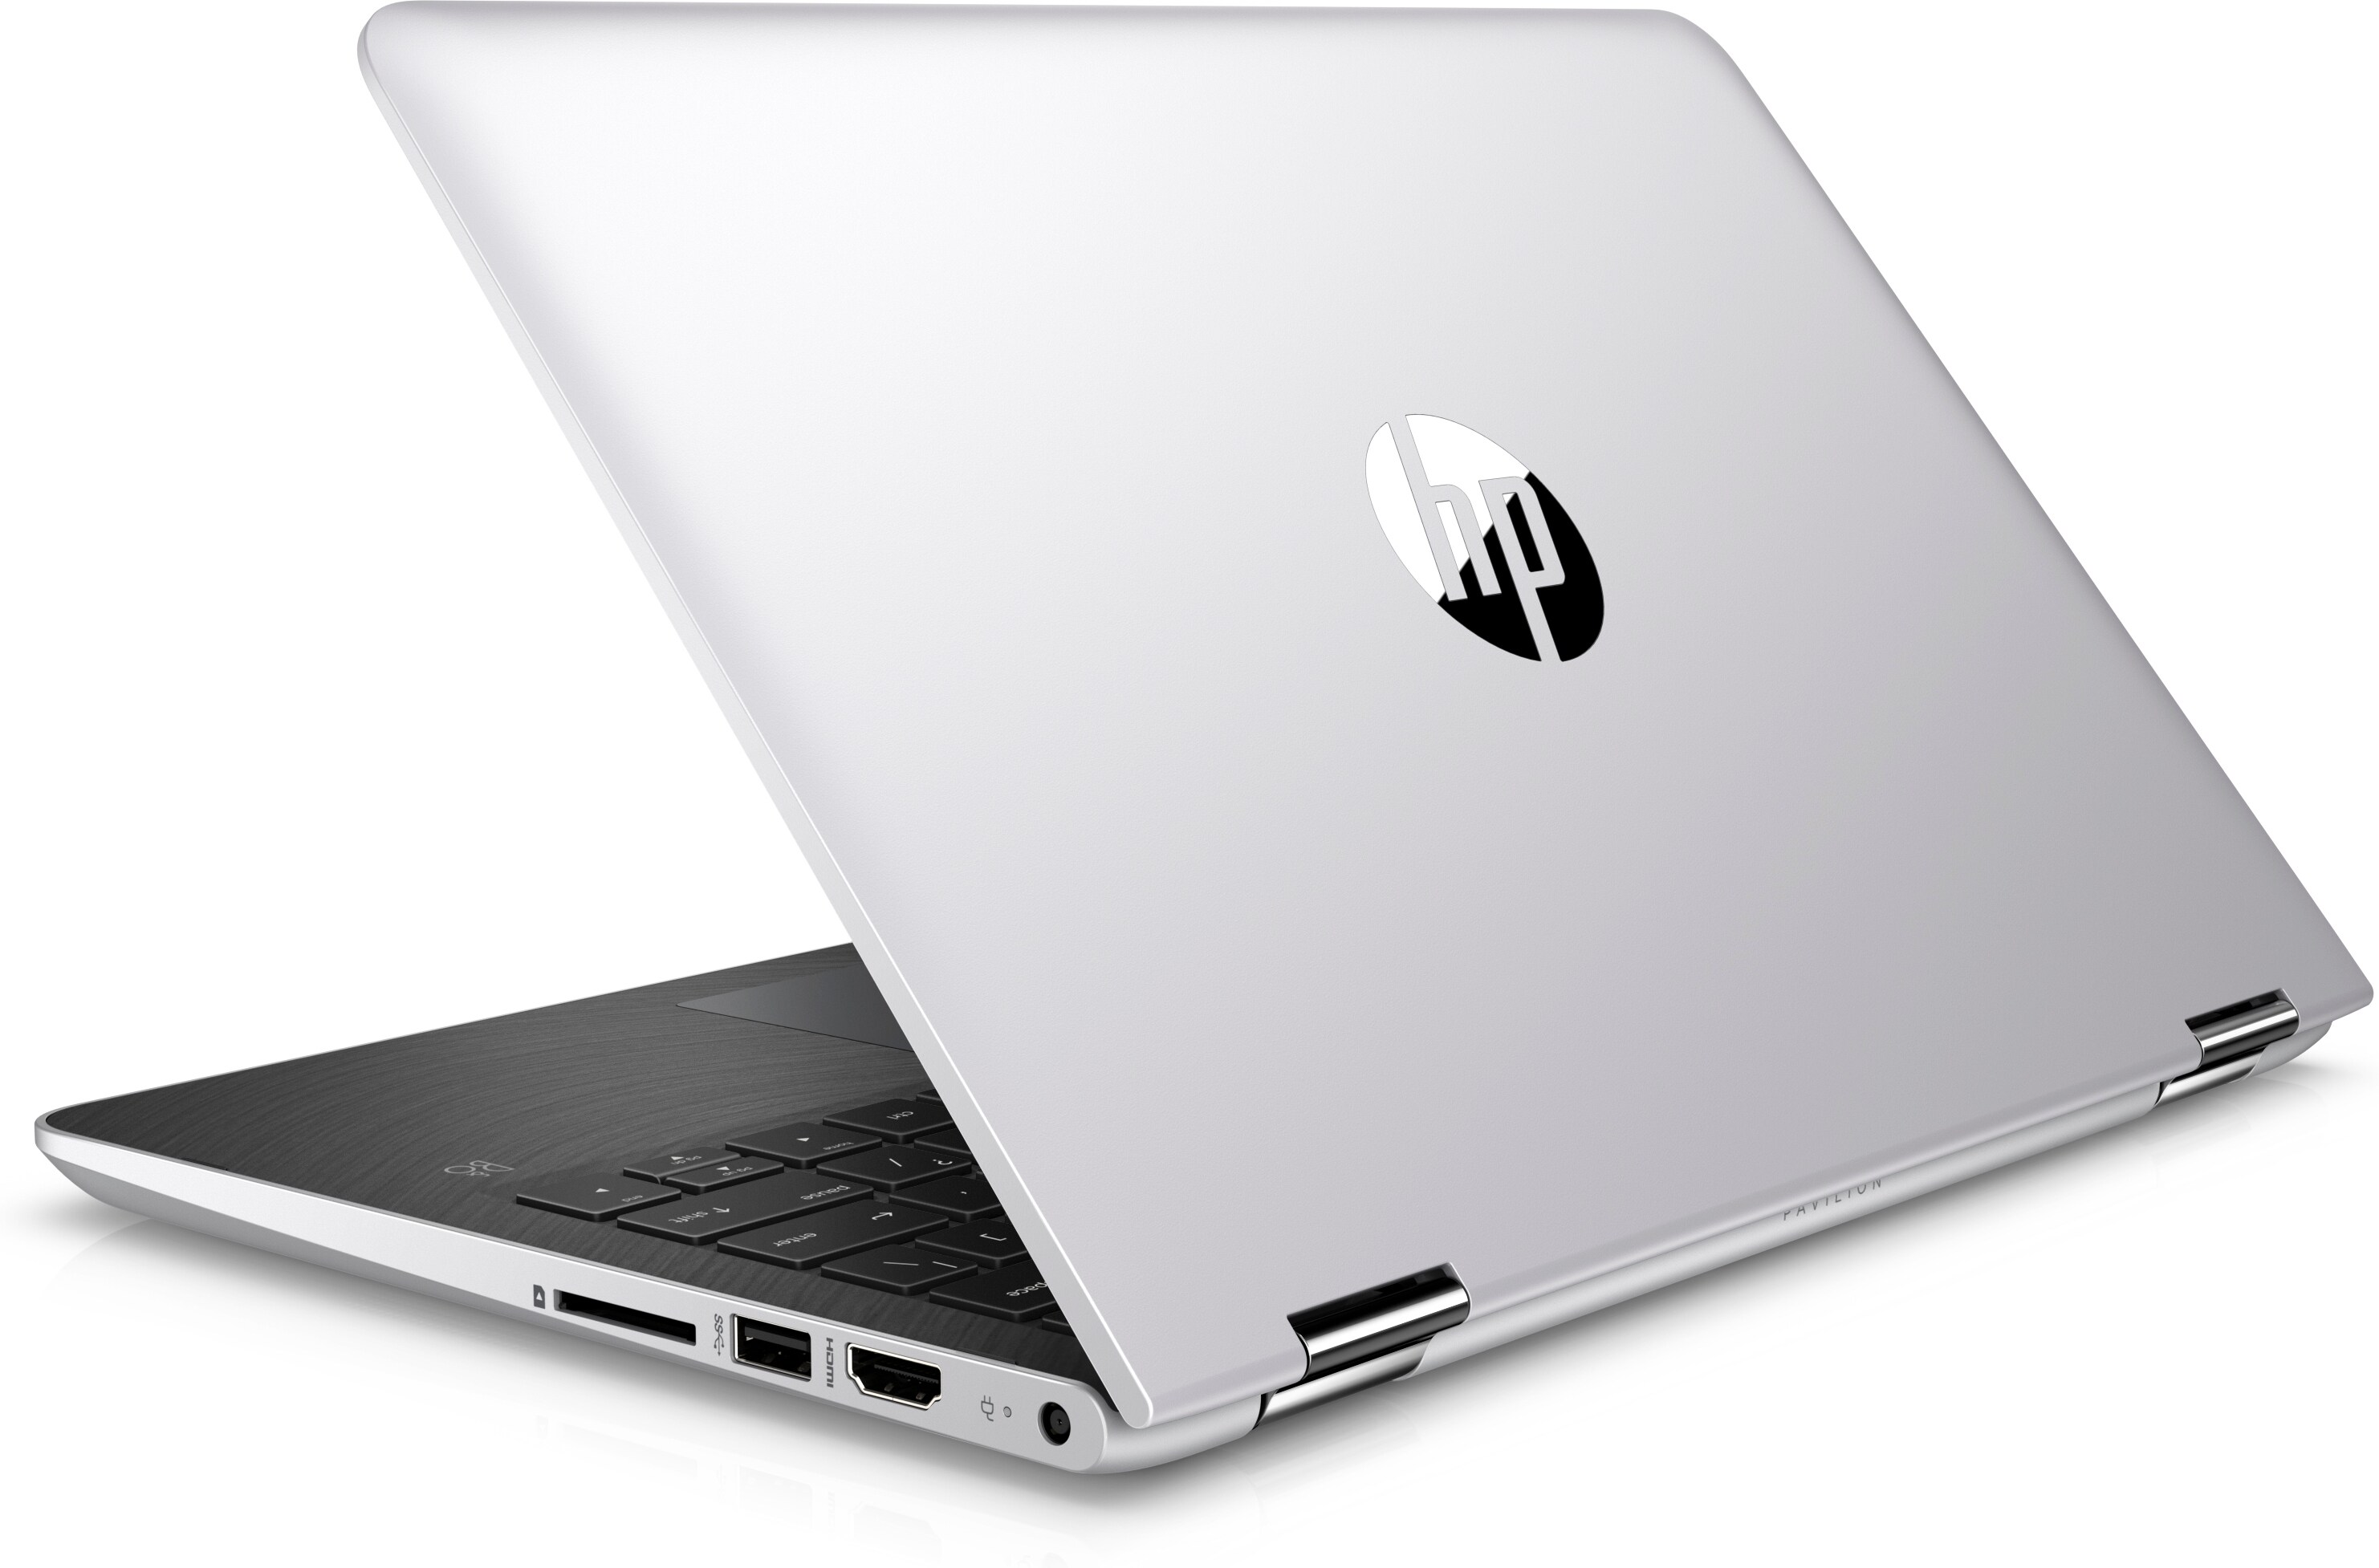 Image result for HP Pavilion x360 - 11m-ad113dx Touchscreen Mini Laptop